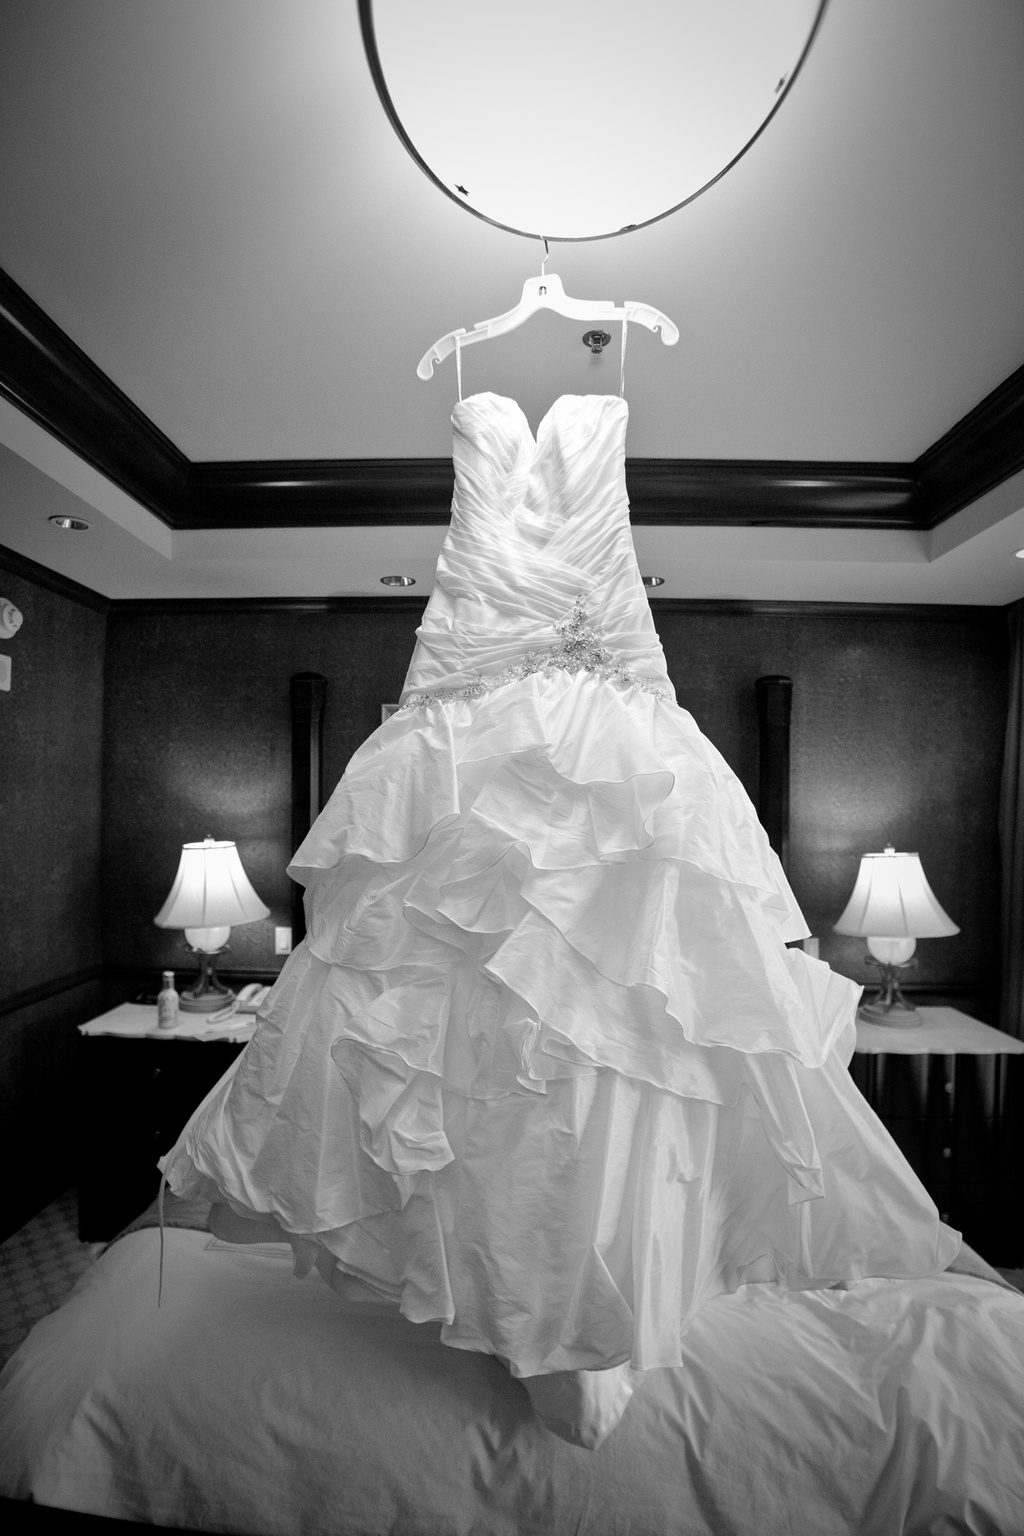 White-wedding-dress-hangs-in-las-vegas-wedding-venue.full